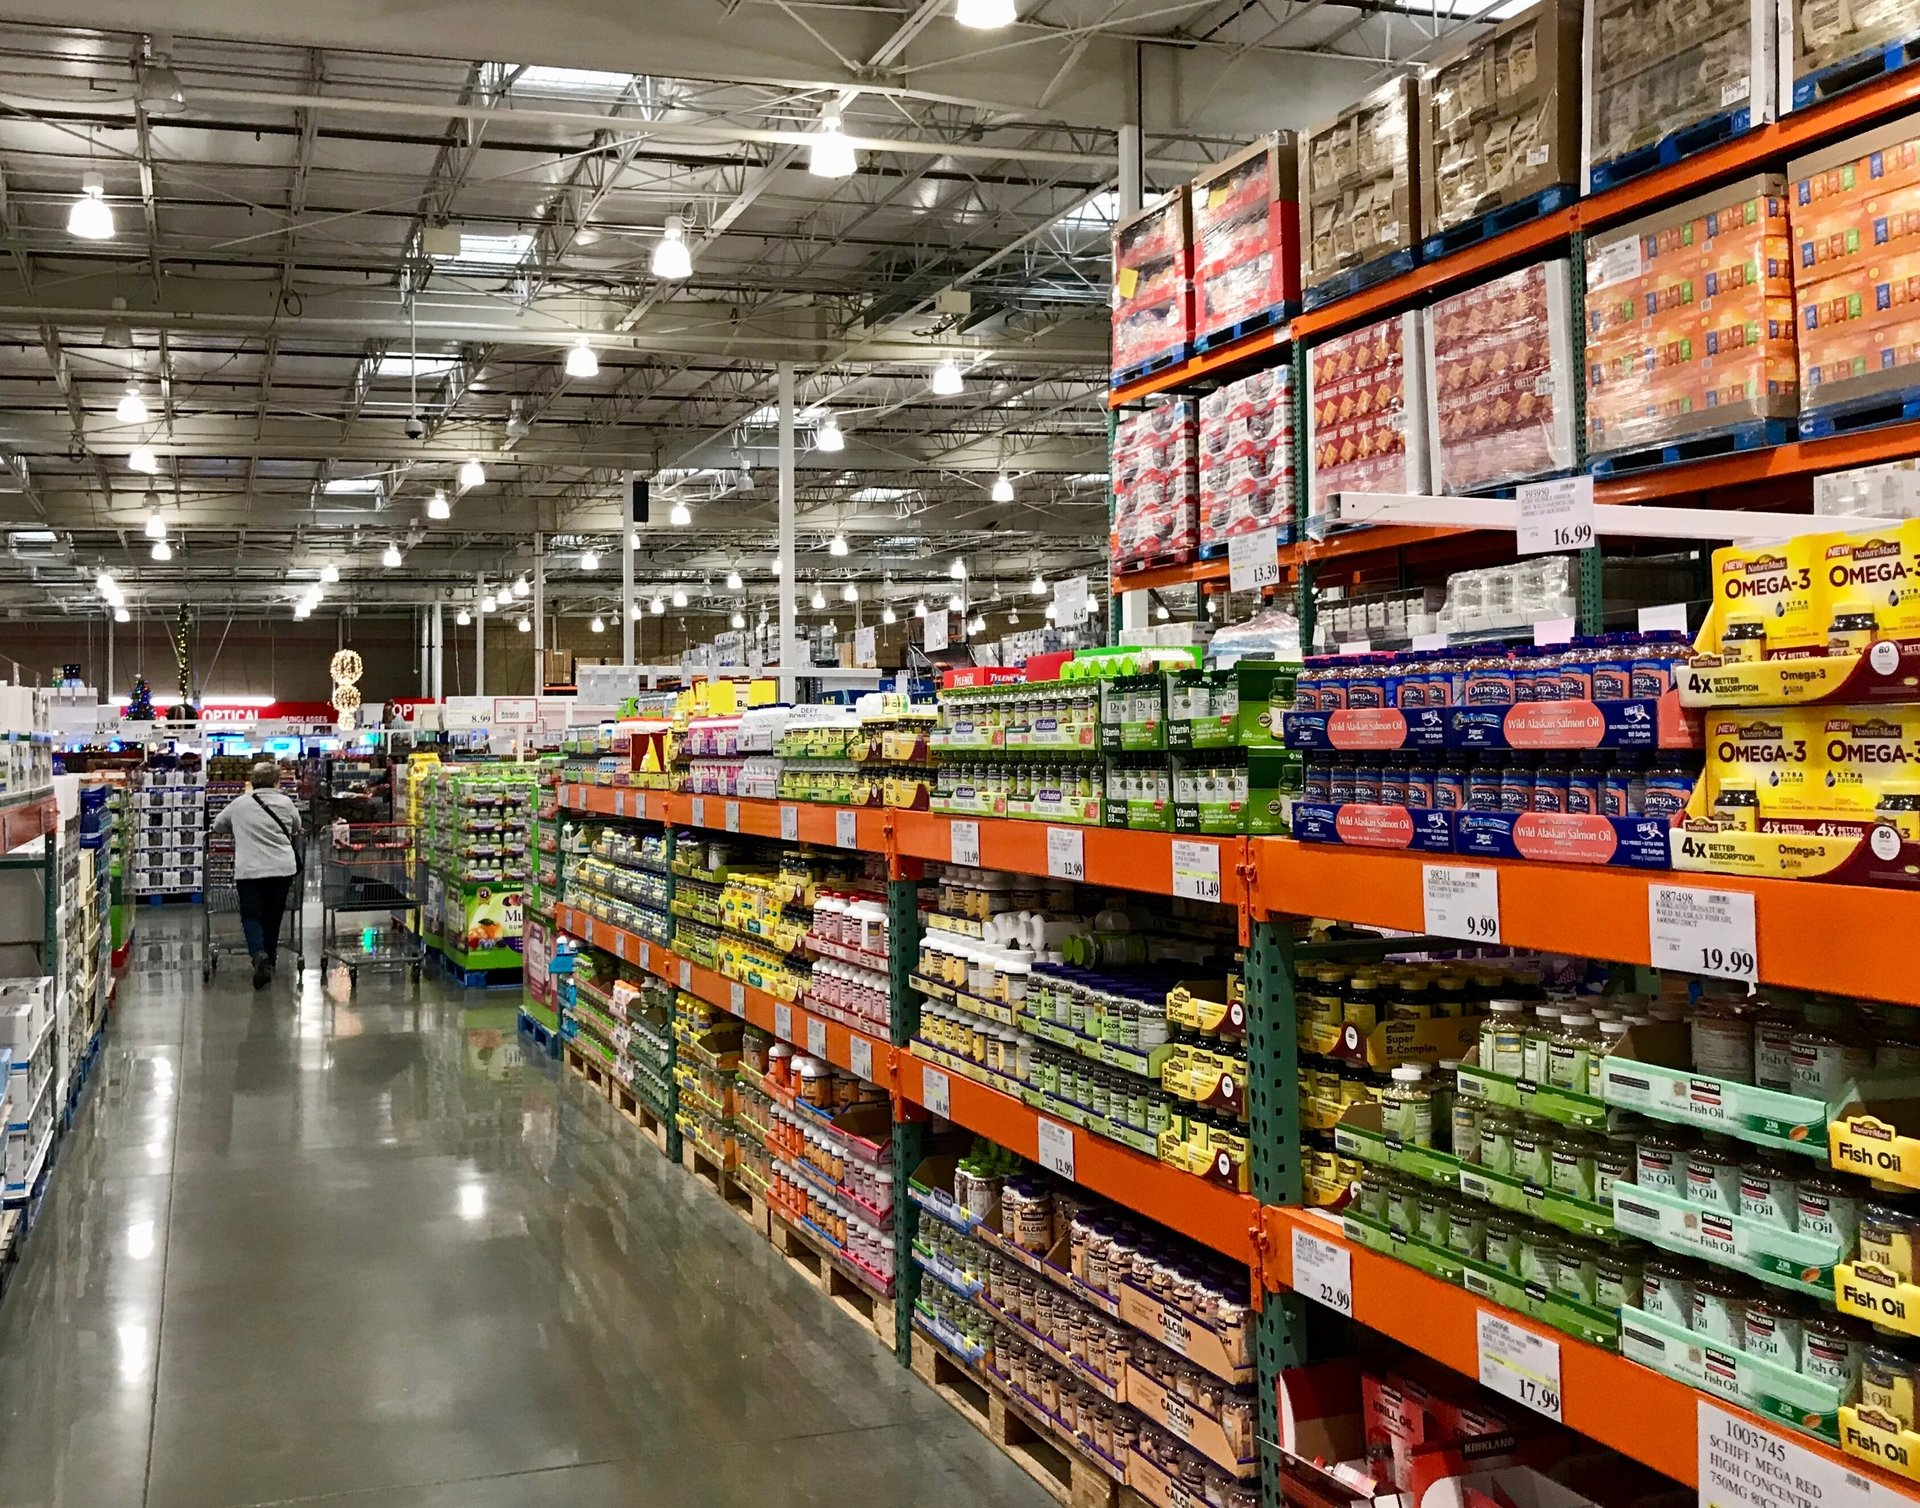 Over-the-counter medication and supplements at Costco